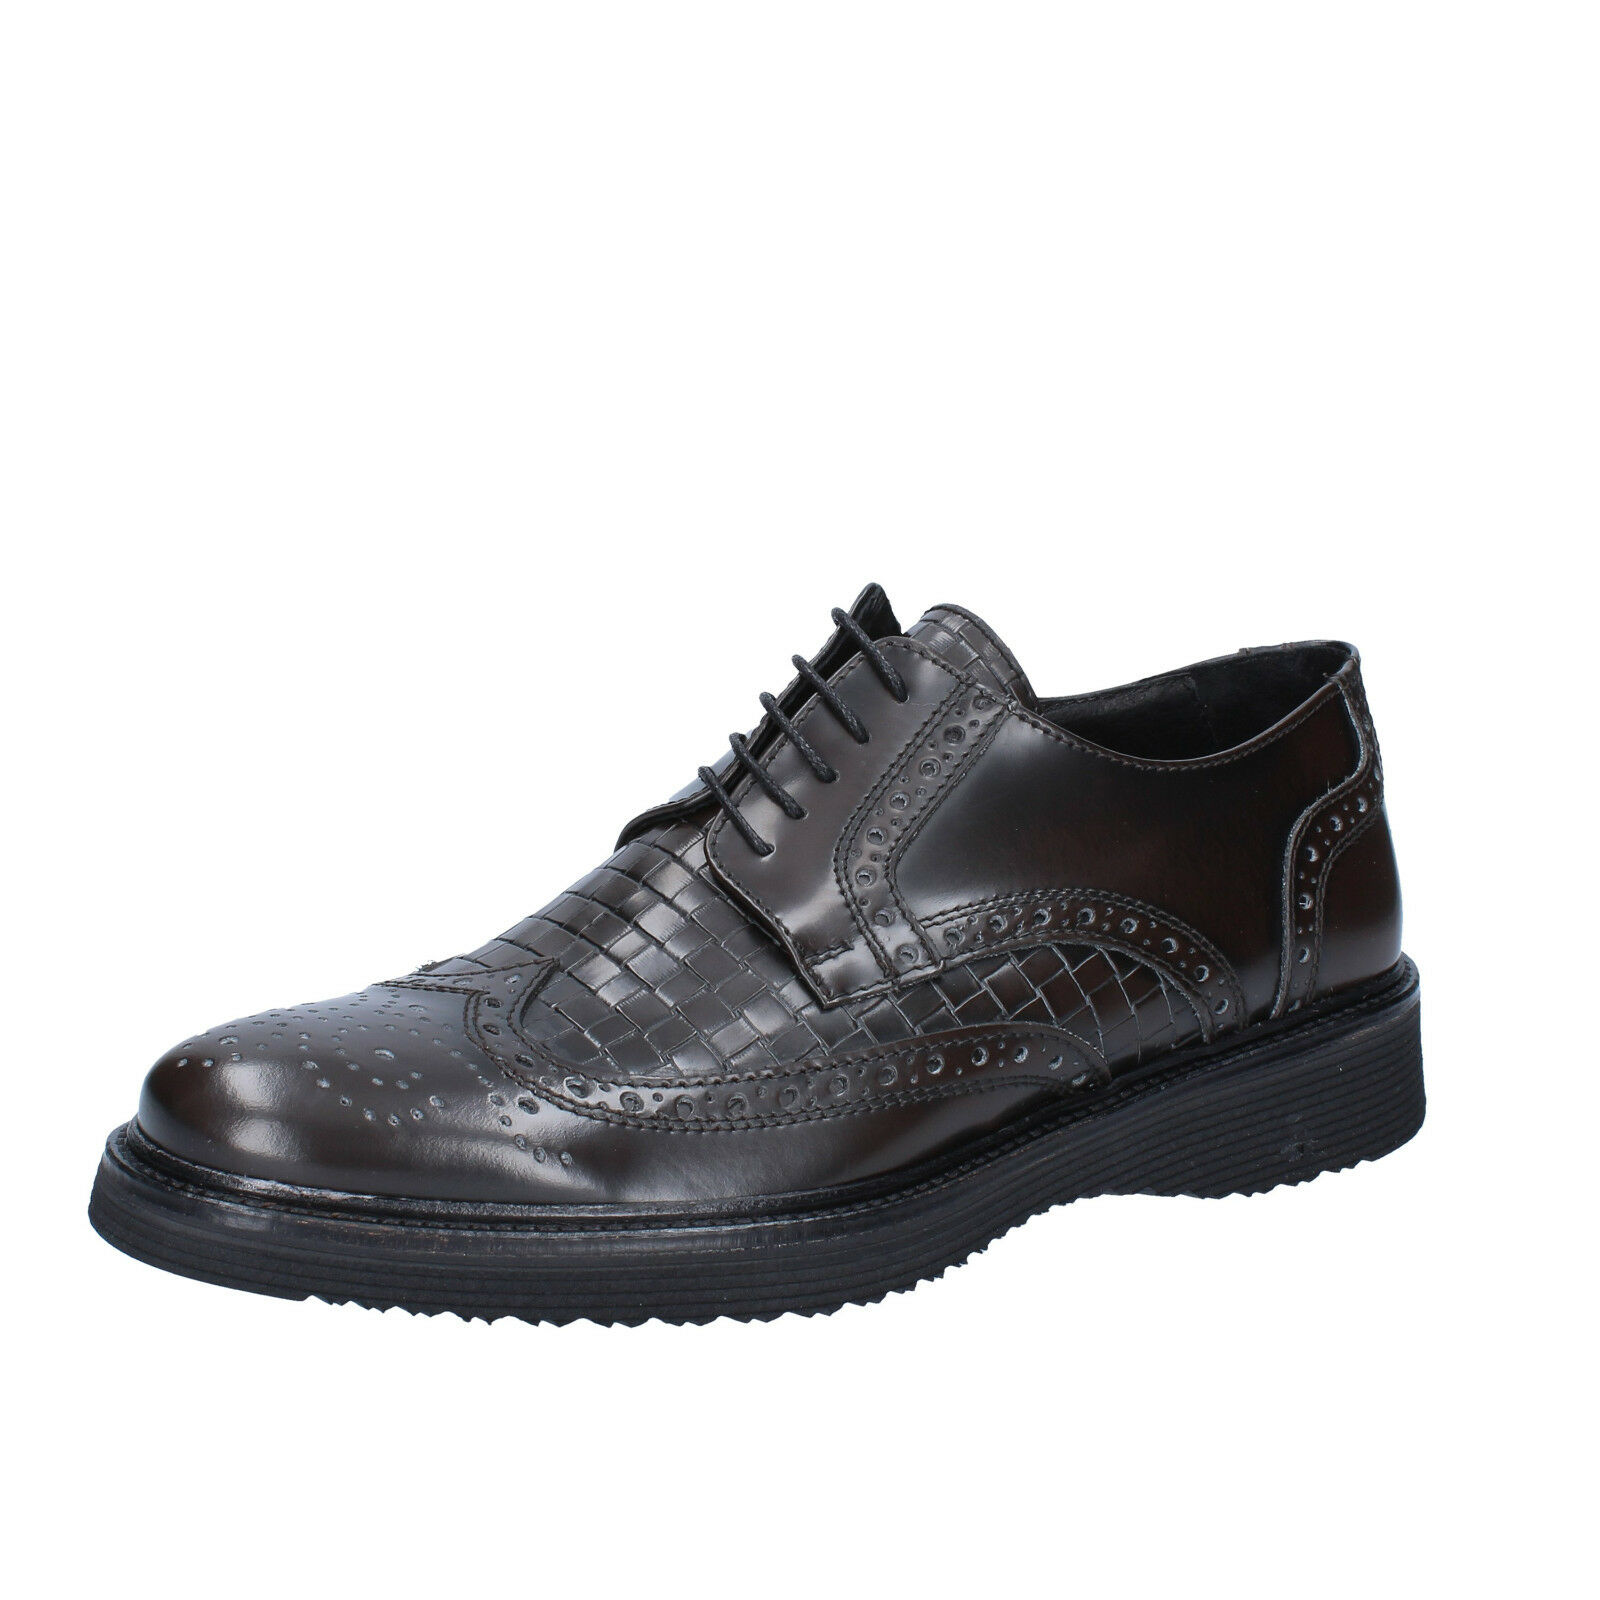 Men's zapatos SALVO BARONE 11 (EU 44 ) elegant marrón shiny leather BZ148-F